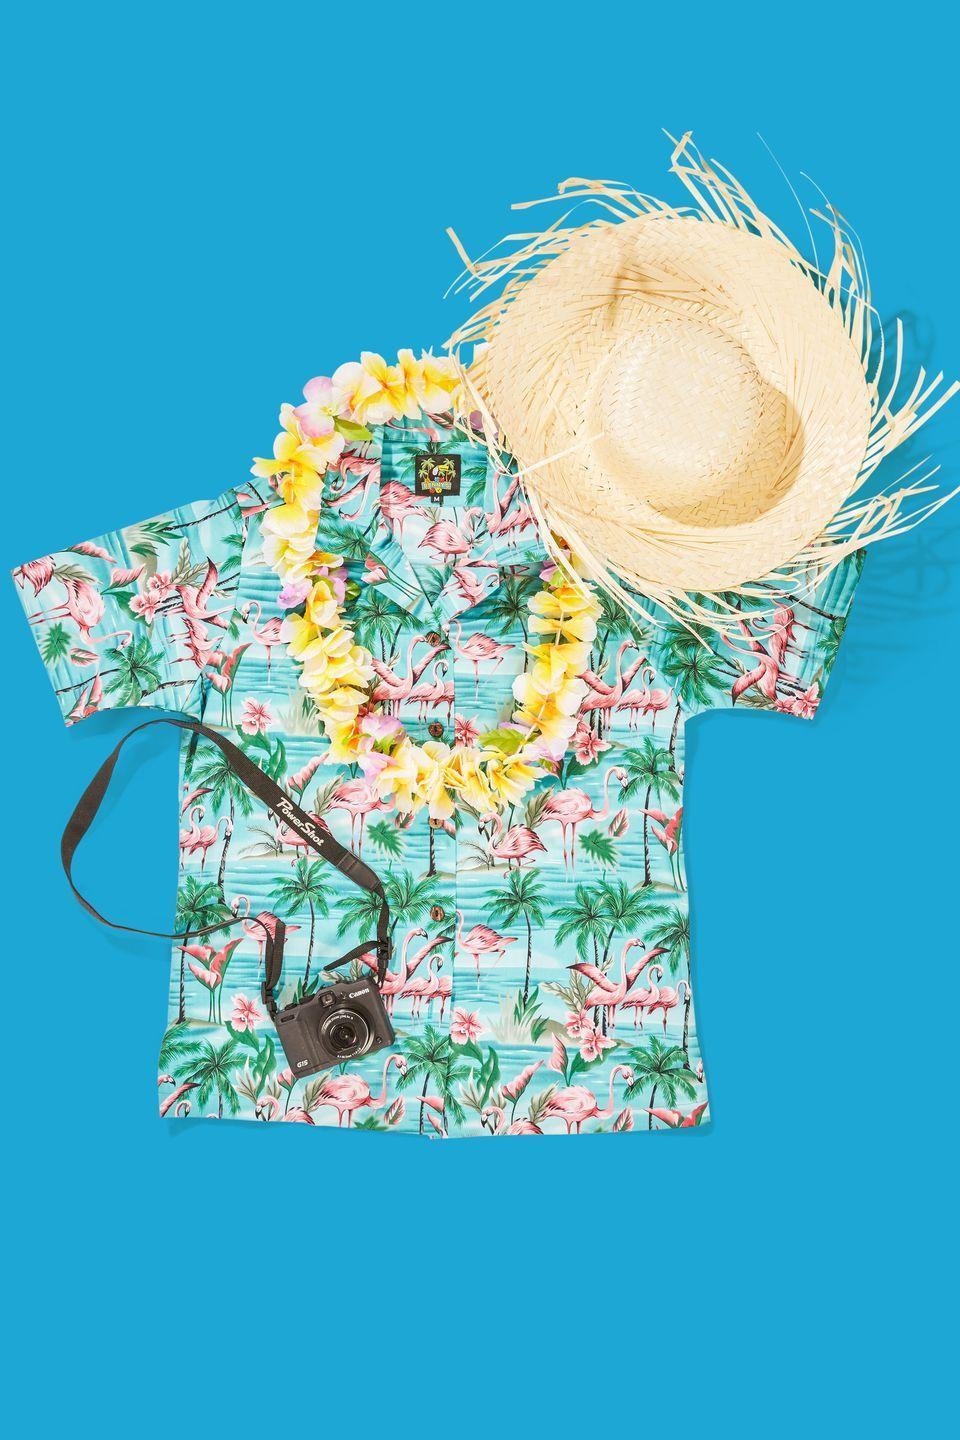 """<p>Take a trip this Halloween (or at least act like you are) by dressing up in a Hawaiian shirt, a straw hat and, of course, a lei. Complete the look with a camera that you can actually use to capture memories from the night. </p><p><strong><a class=""""link rapid-noclick-resp"""" href=""""https://www.amazon.com/Funky-Hawaiian-Blouse-Smallflower-lightblue/dp/B01KKAJQX6?tag=syn-yahoo-20&ascsubtag=%5Bartid%7C10070.g.490%5Bsrc%7Cyahoo-us"""" rel=""""nofollow noopener"""" target=""""_blank"""" data-ylk=""""slk:SHOP HAWAIIAN SHIRTS"""">SHOP HAWAIIAN SHIRTS</a></strong></p>"""